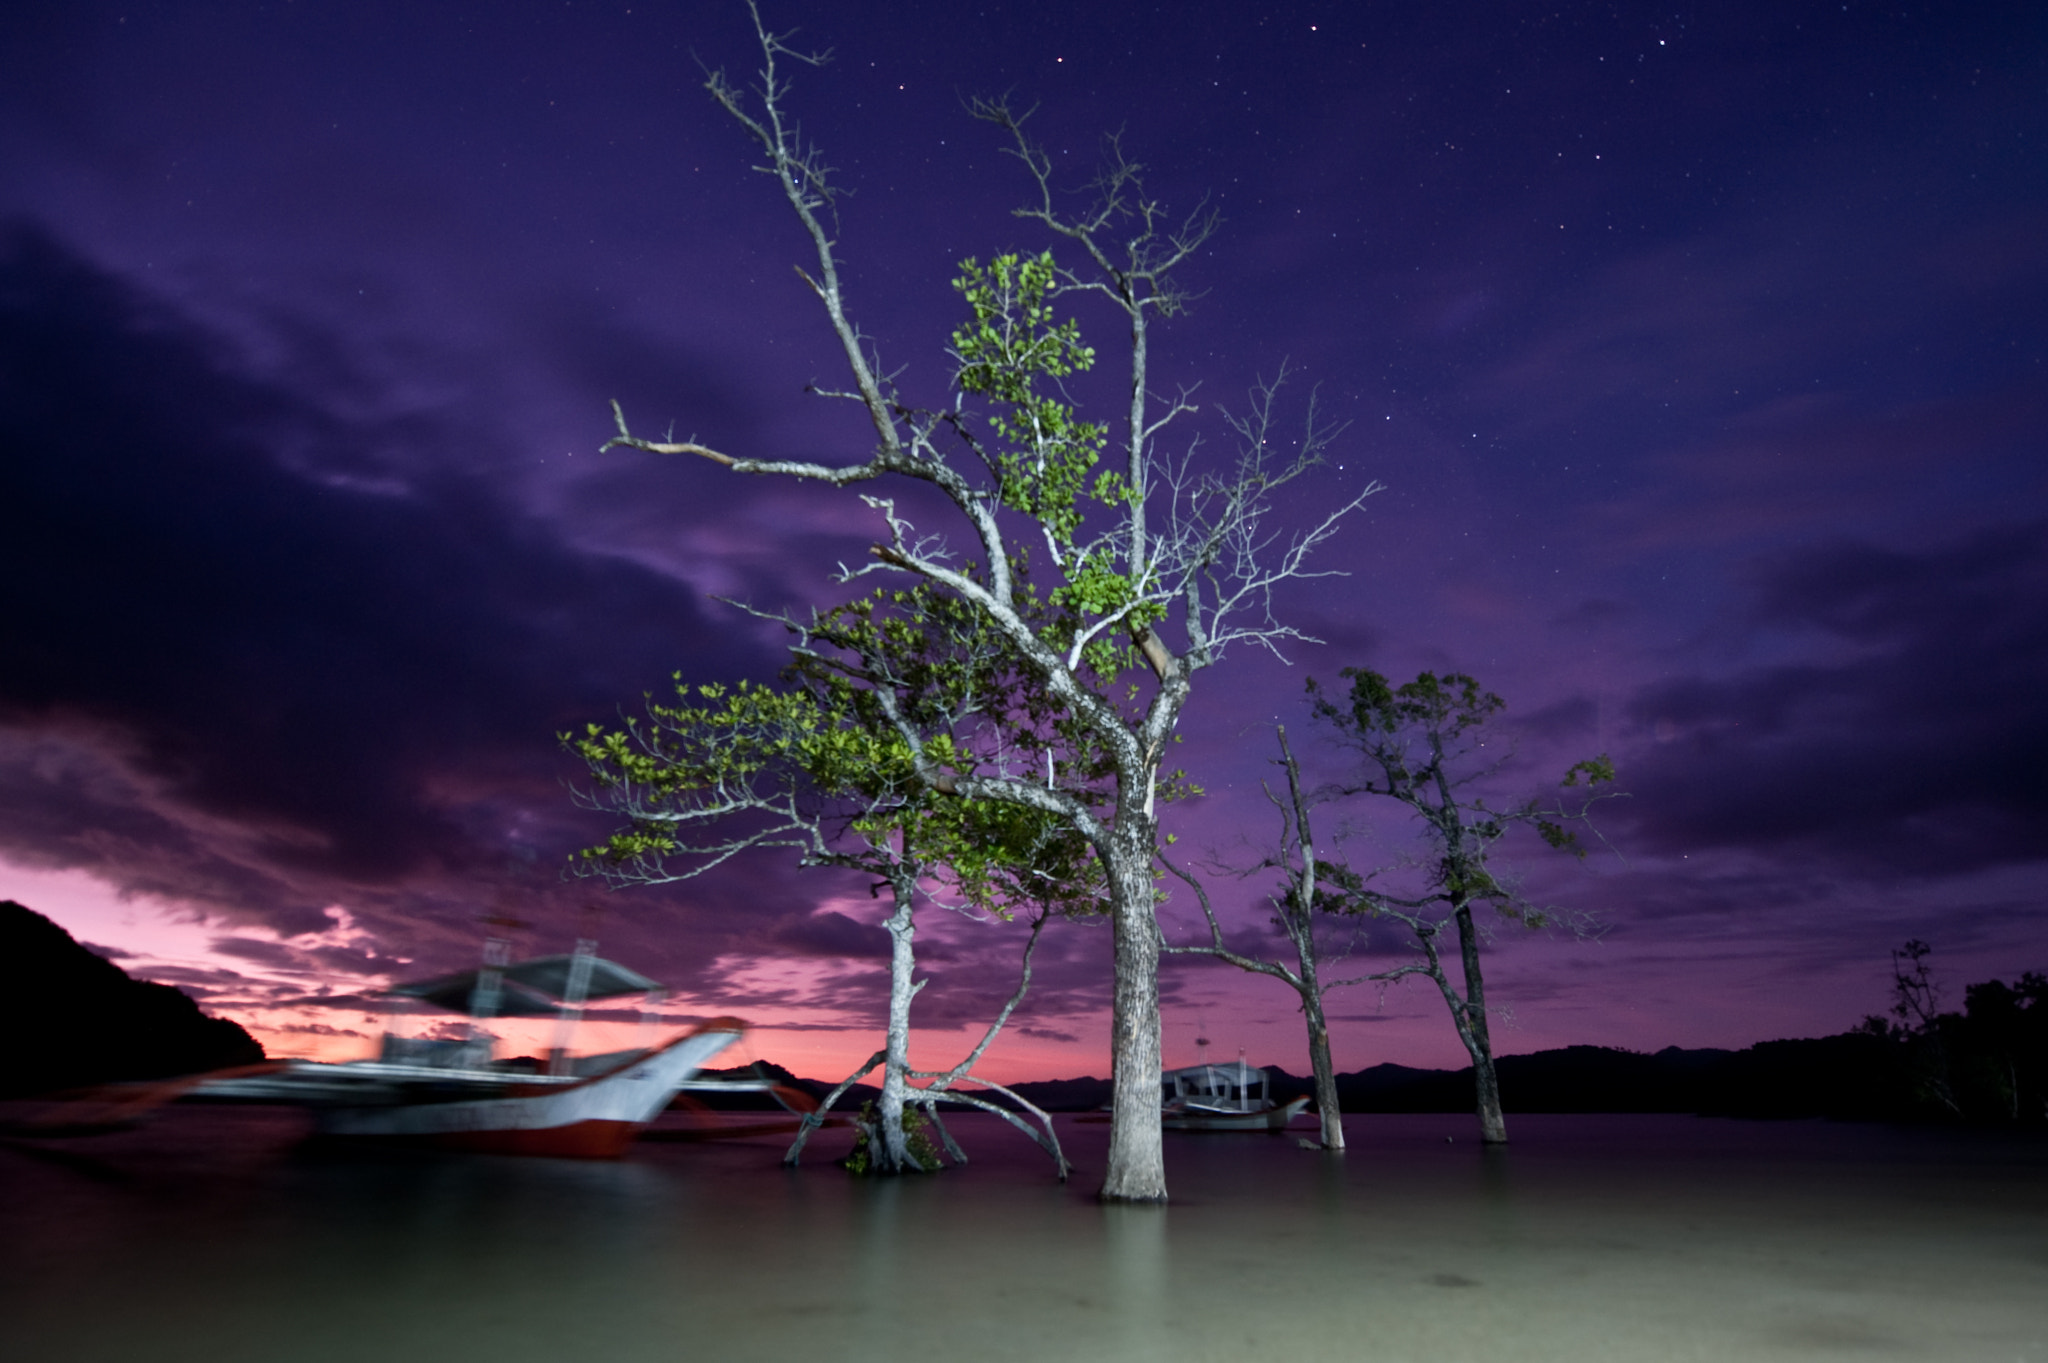 Photograph A Tree at Night :: 30 Seconds by Sam Gellman on 500px